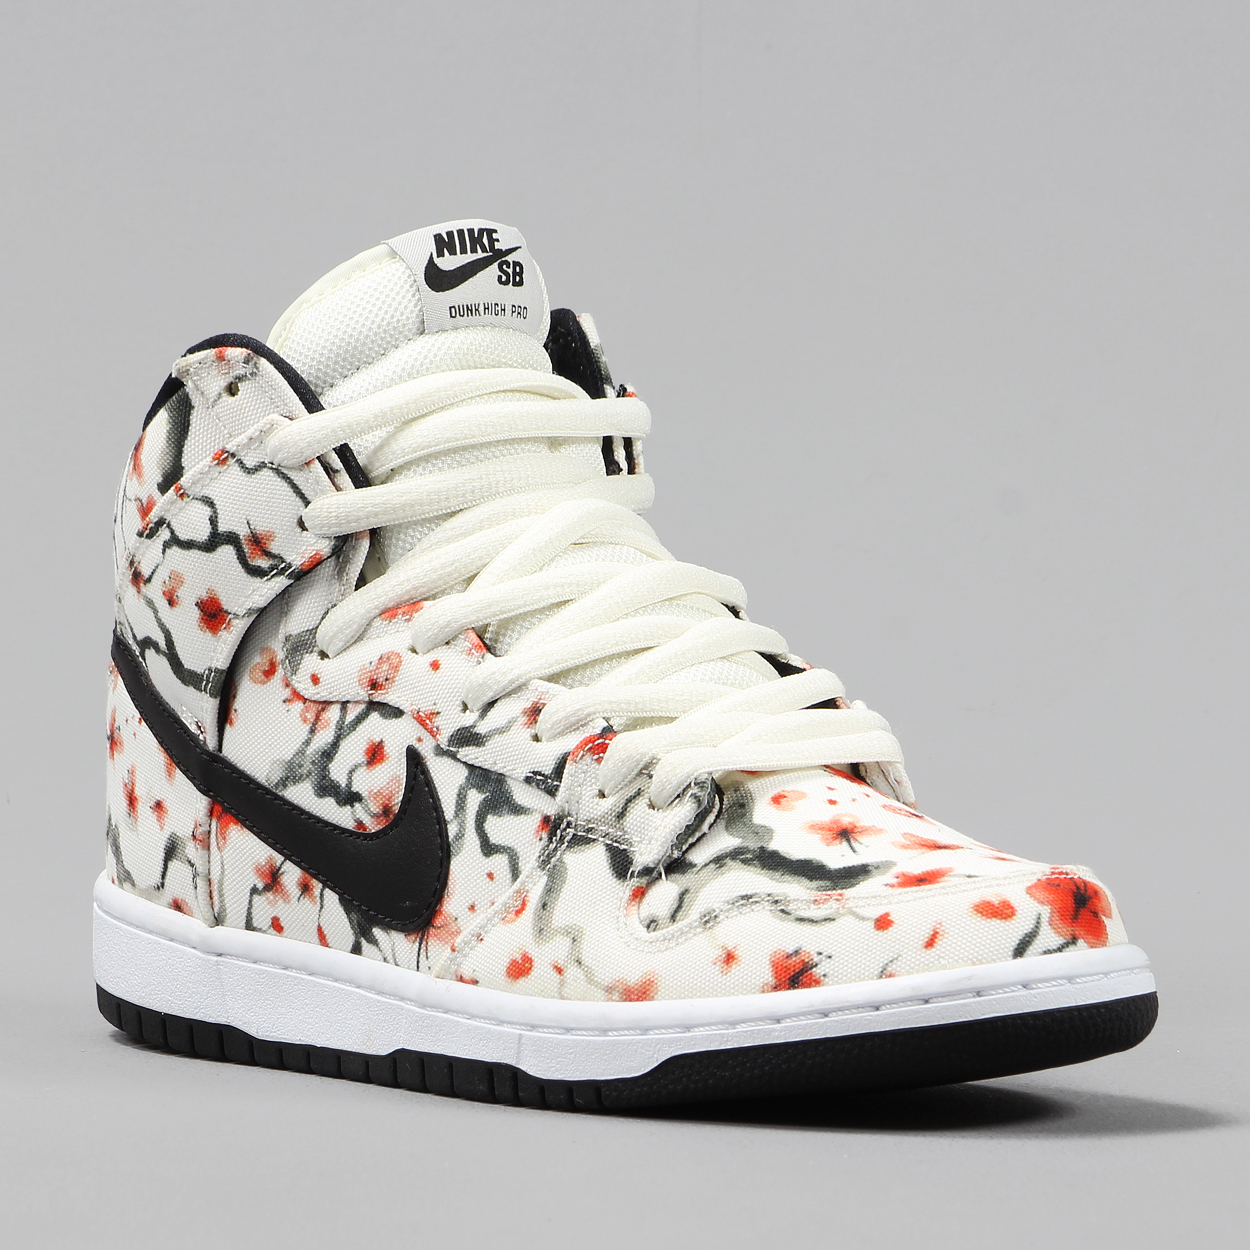 premium selection b7cd3 da19c Driving the work force and keeping your feet looking sick, is the Nike SB  Dunks with the new Cherry Blossom printed mesh panels for a unique style,  ...